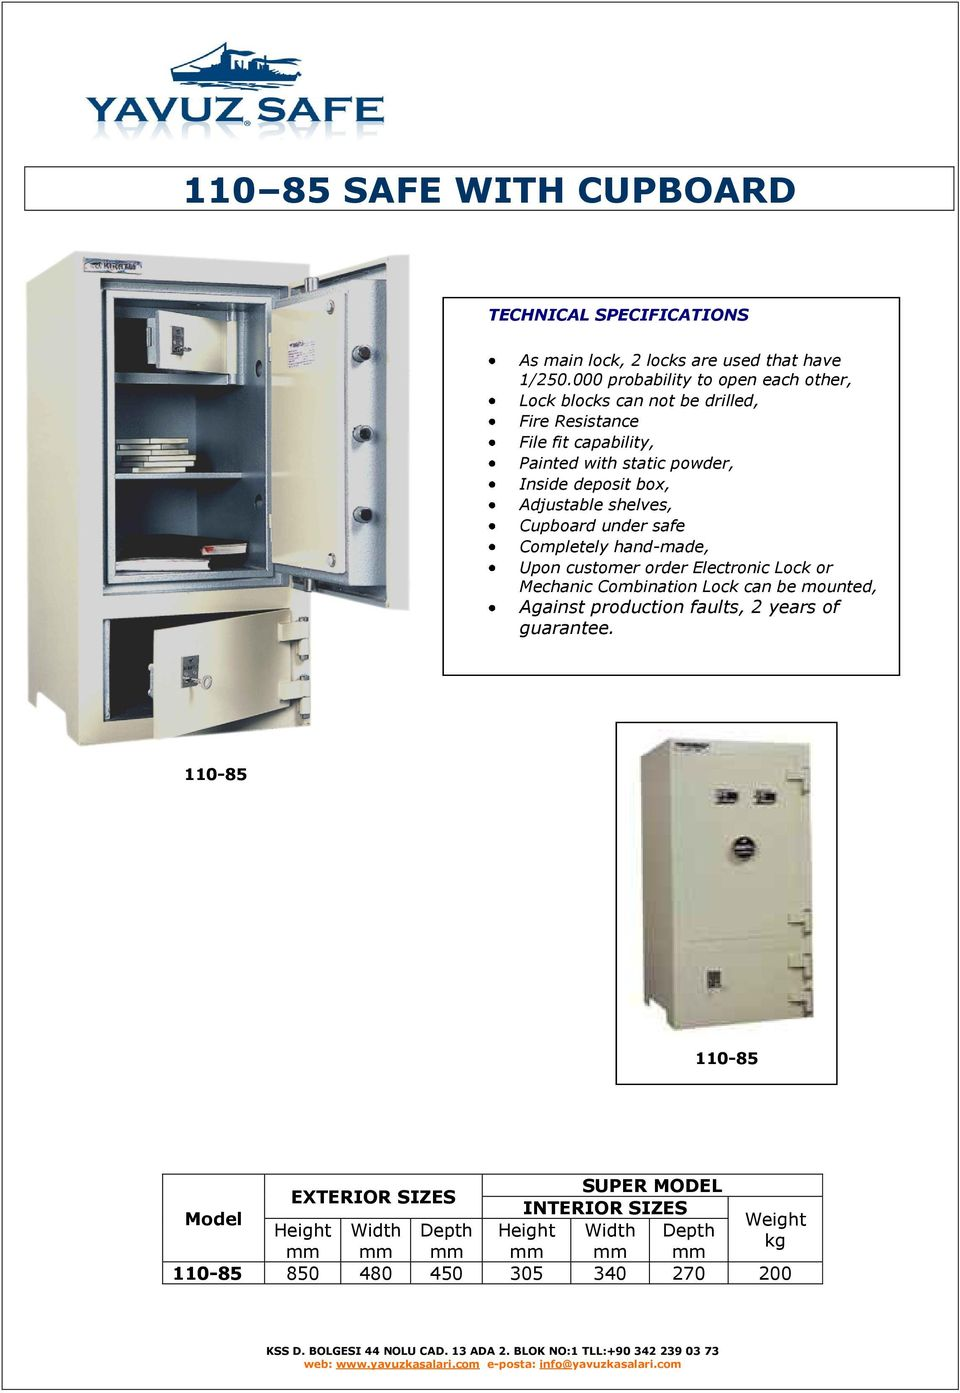 deposit box, Adjustable shelves, Cupboard under safe Completely hand-made, Upon customer order Electronic Lock or Mechanic Combination Lock can